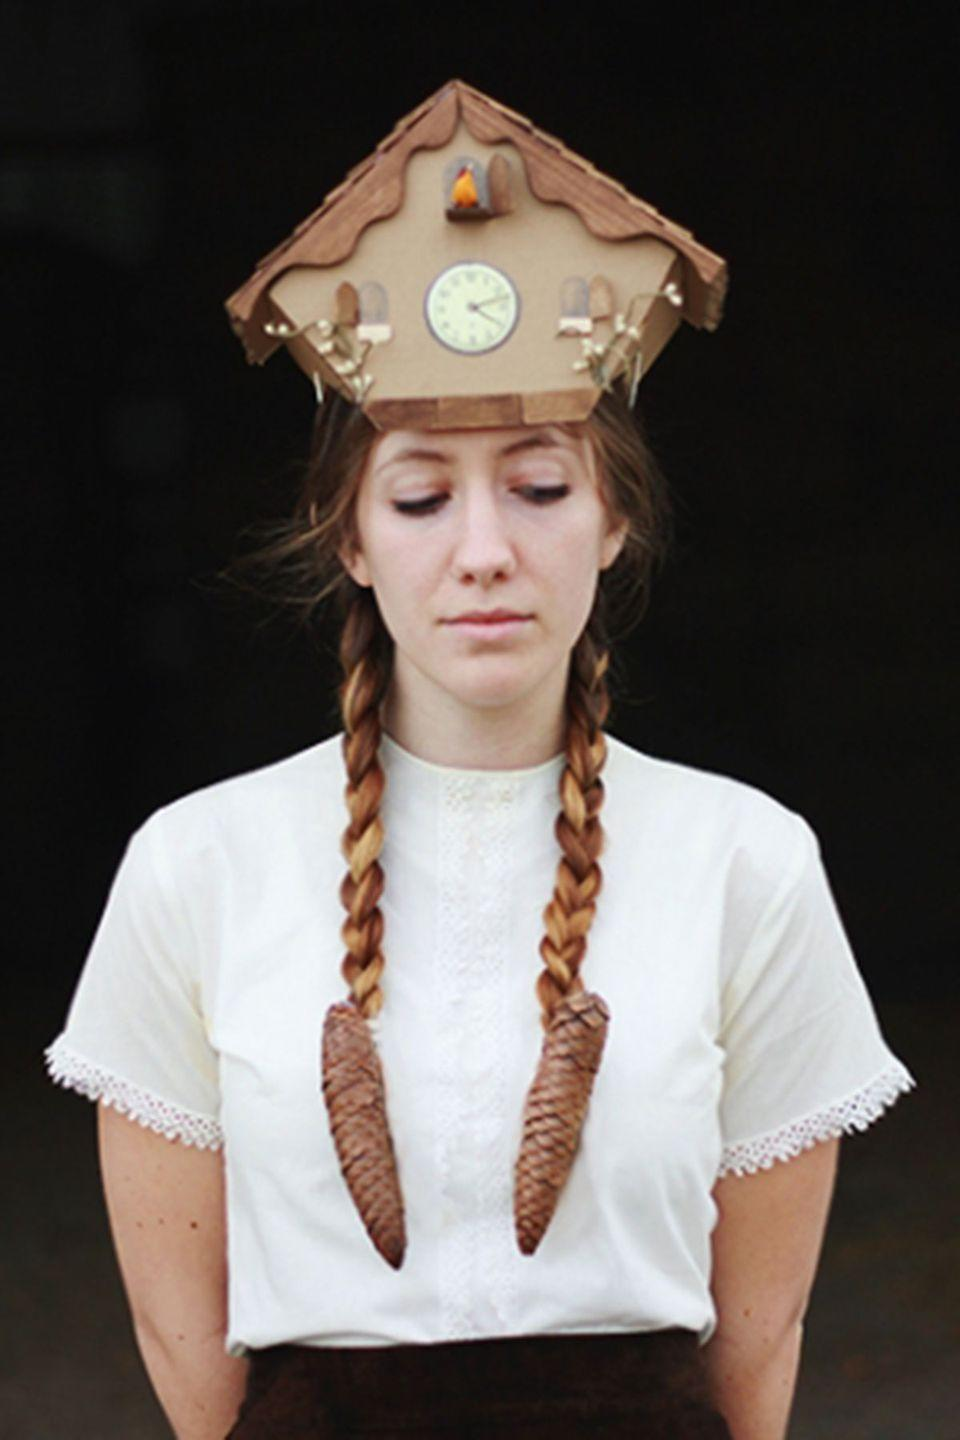 """<p>You're sure to be the only one at the Halloween party wearing this quirky costume—complete with pretty pendulum pinecone braids.<br></p><p><strong>Get the tutorial at <a href=""""http://themerrythought.com/diy/diy-cuckoo-clock-costume/"""" rel=""""nofollow noopener"""" target=""""_blank"""" data-ylk=""""slk:The Merrythought"""" class=""""link rapid-noclick-resp"""">The Merrythought</a>. </strong></p><p><strong><a class=""""link rapid-noclick-resp"""" href=""""https://www.amazon.com/Johouse-Decoration-Christmas-Ornaments-Different/dp/B07YHQT67J/ref=sr_1_16?dchild=1&keywords=pine+cones&qid=1624891835&sr=8-16&tag=syn-yahoo-20&ascsubtag=%5Bartid%7C10050.g.4571%5Bsrc%7Cyahoo-us"""" rel=""""nofollow noopener"""" target=""""_blank"""" data-ylk=""""slk:SHOP PINE CONES"""">SHOP PINE CONES</a><br></strong></p>"""